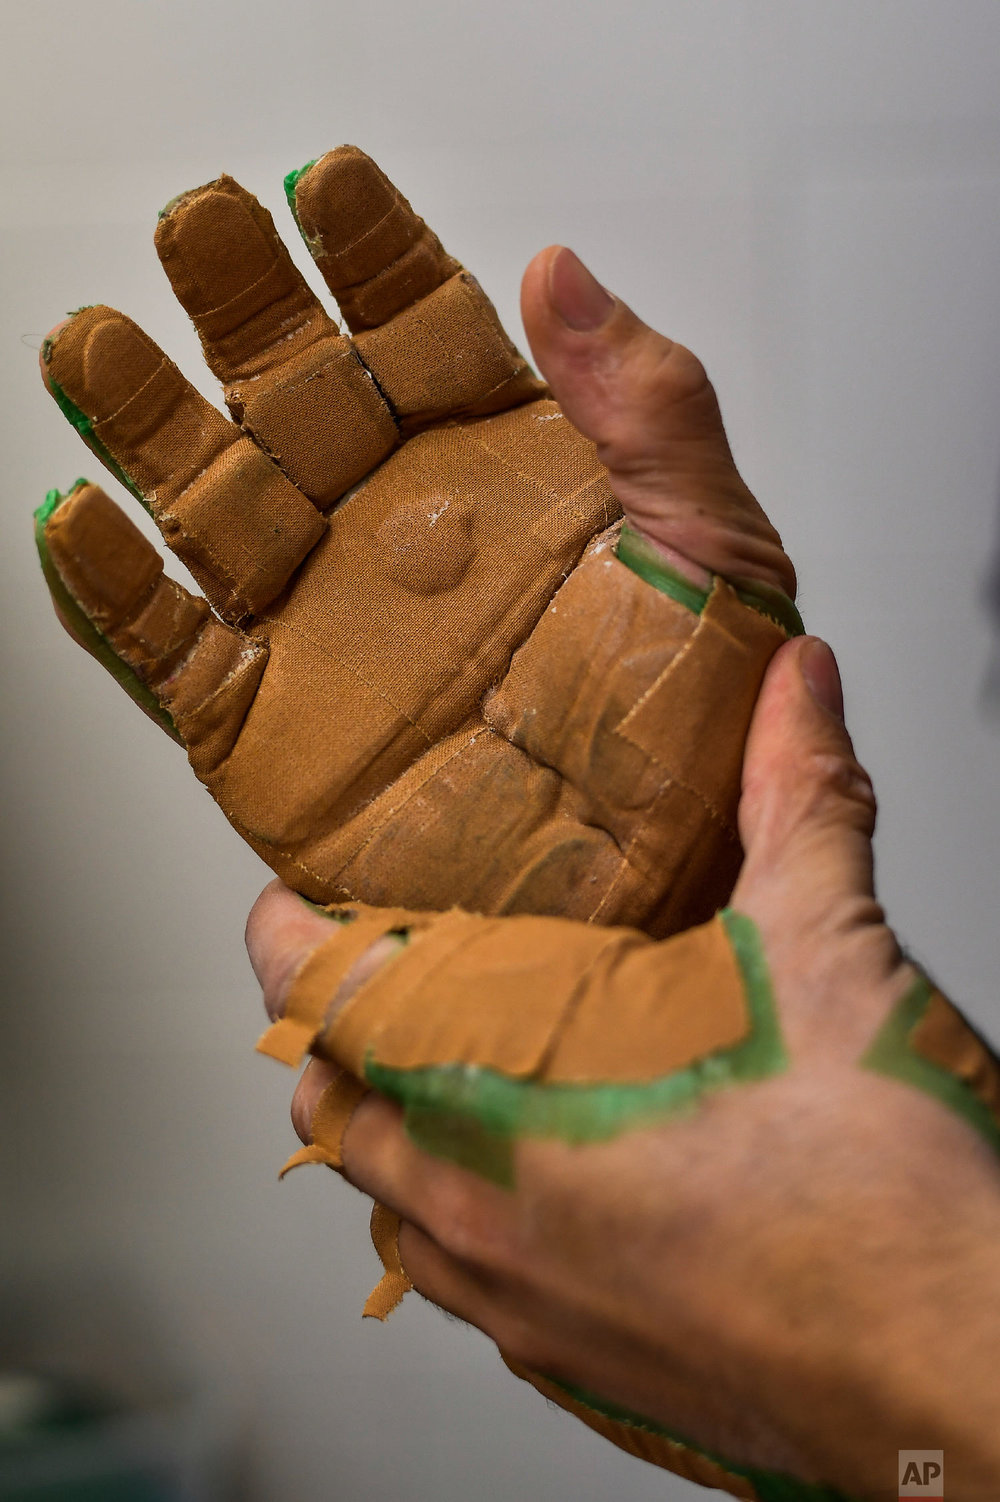 """Victor Esteban, a player of Basque Ball, known as """"pelotari"""", prepares and protects his hands ahead of a training session, in Pamplona, Spain on Feb. 28, 2019. (AP Photo/Alvaro Barrientos)"""